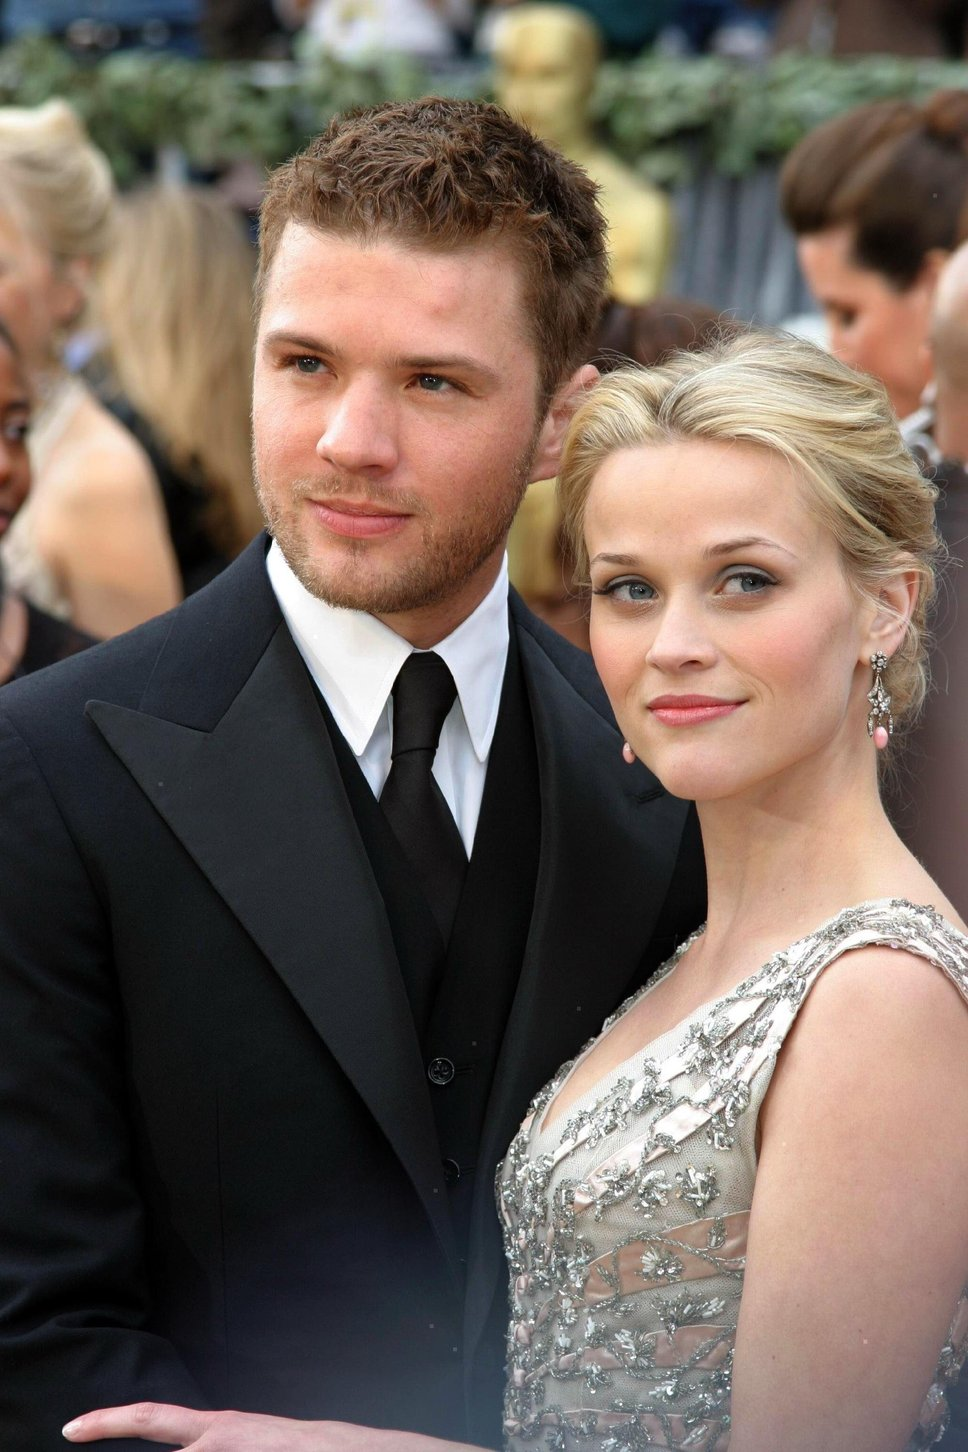 Reese Witherspoon has an affair with Gerard Butler 05.02.2010 99